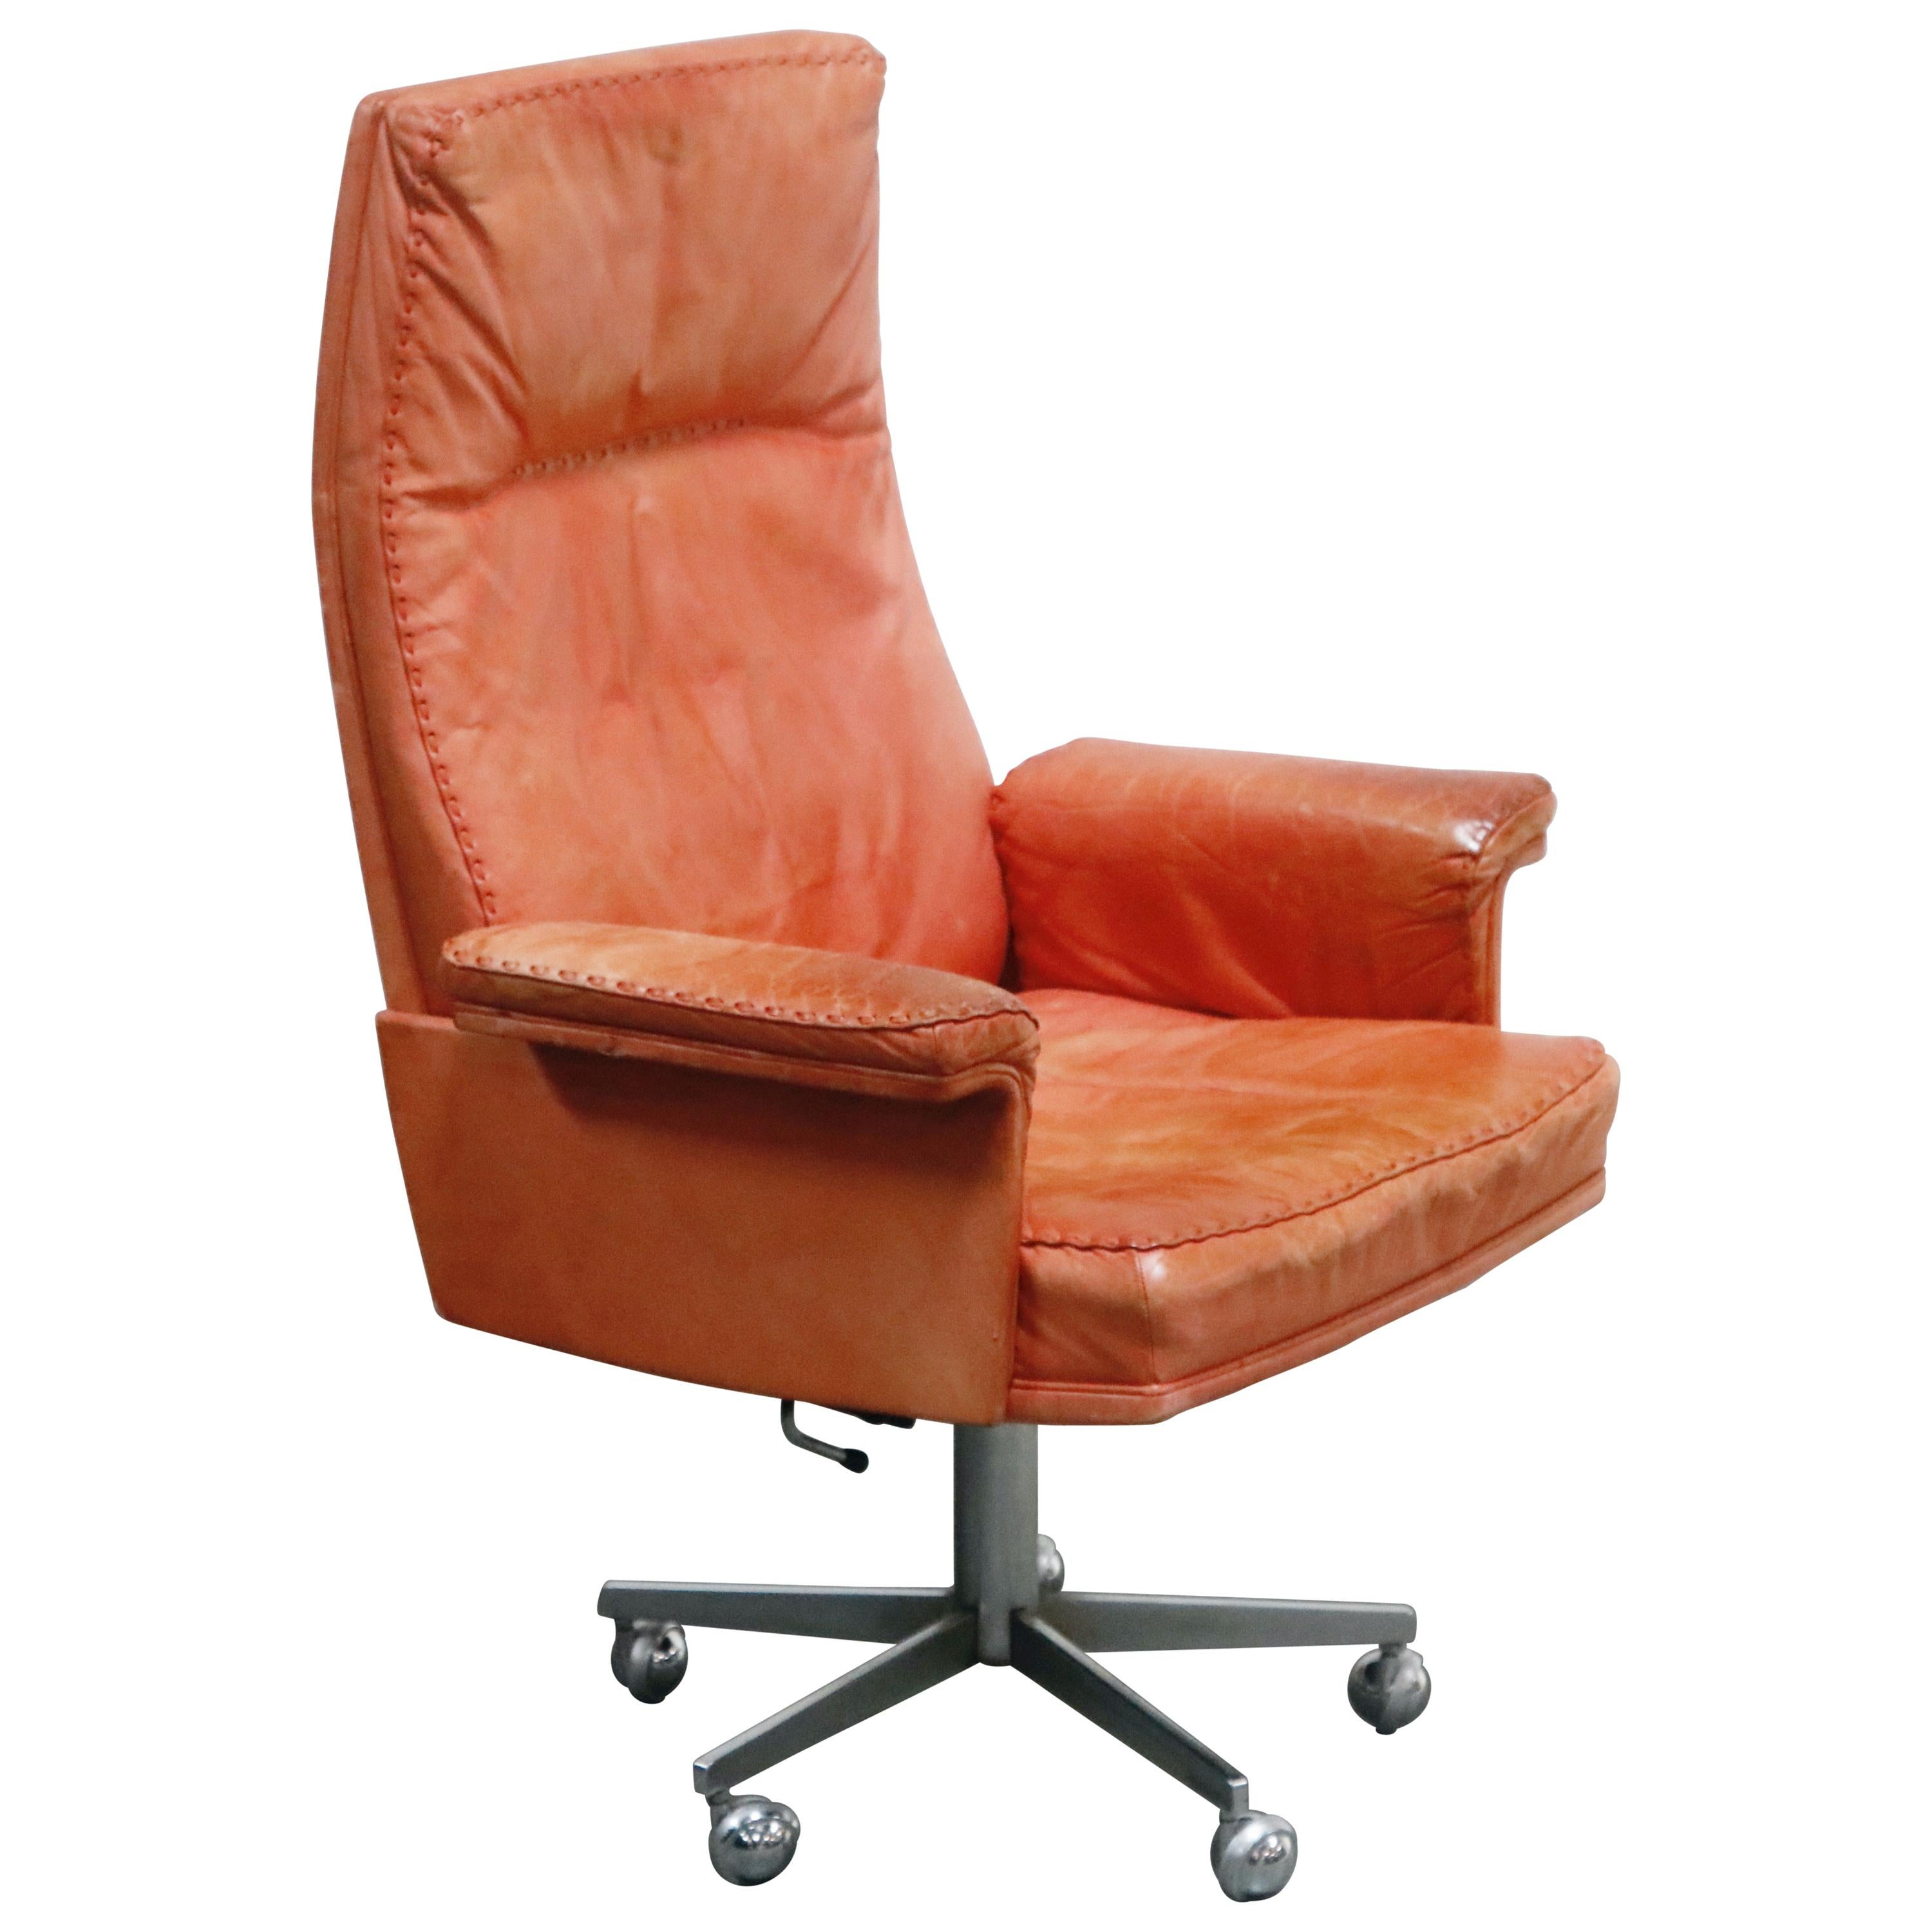 De Sede DS-35 Distressed Leather Executive Office Chair, Signed and Dated 1969